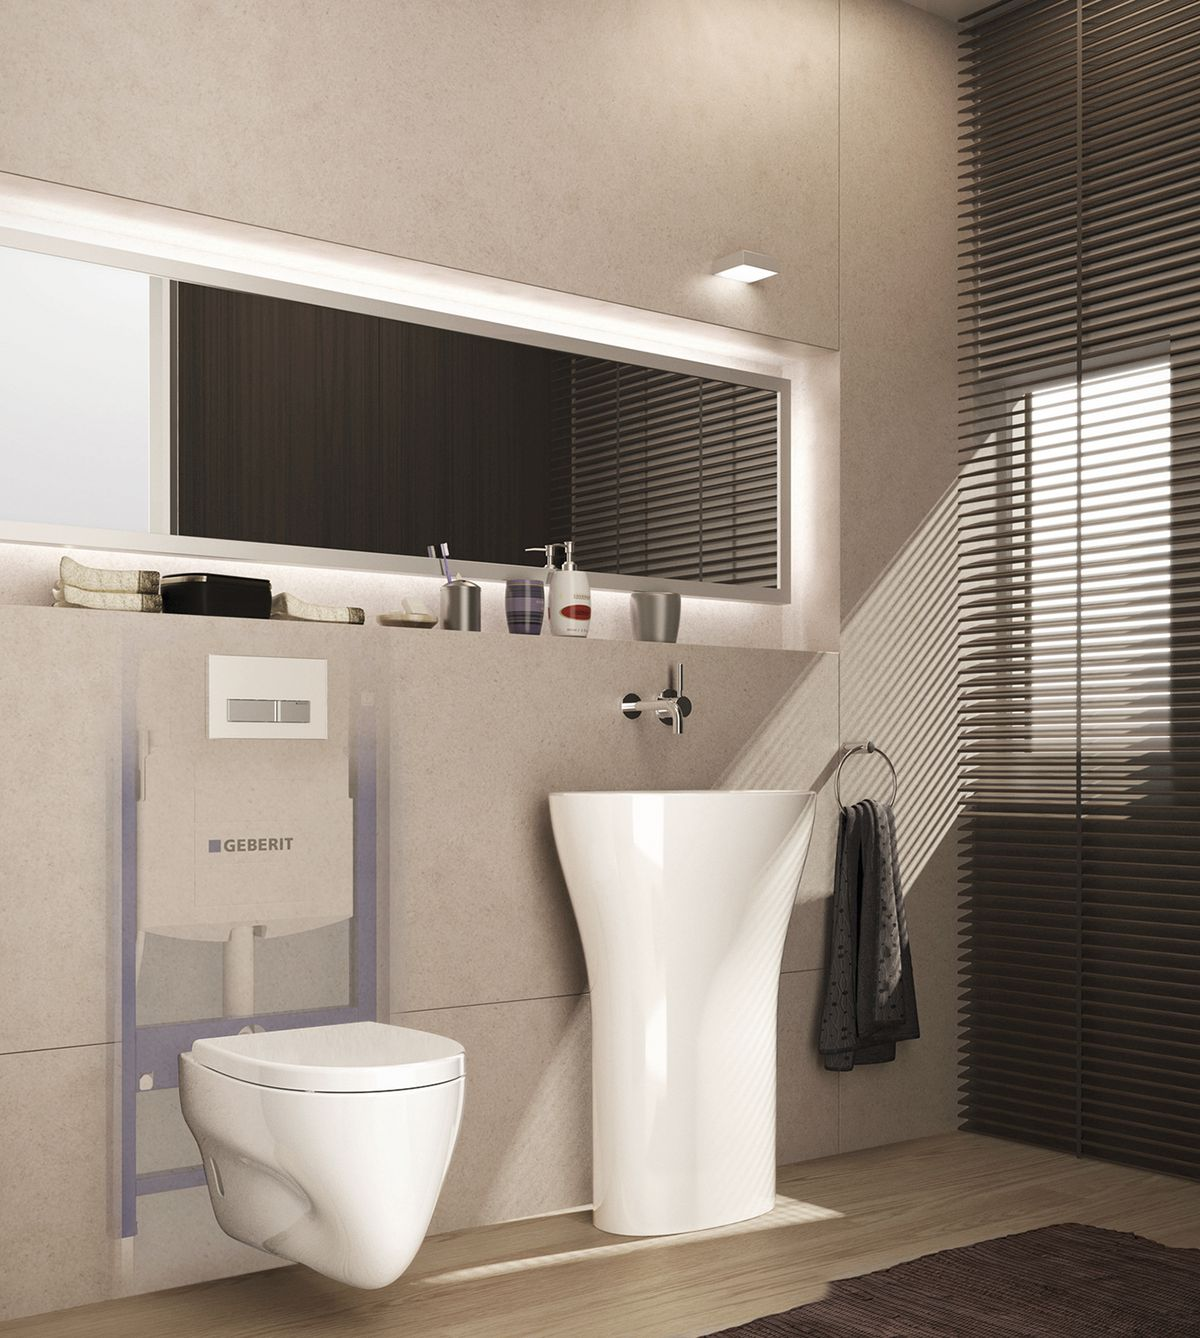 Wall mounted toilet.